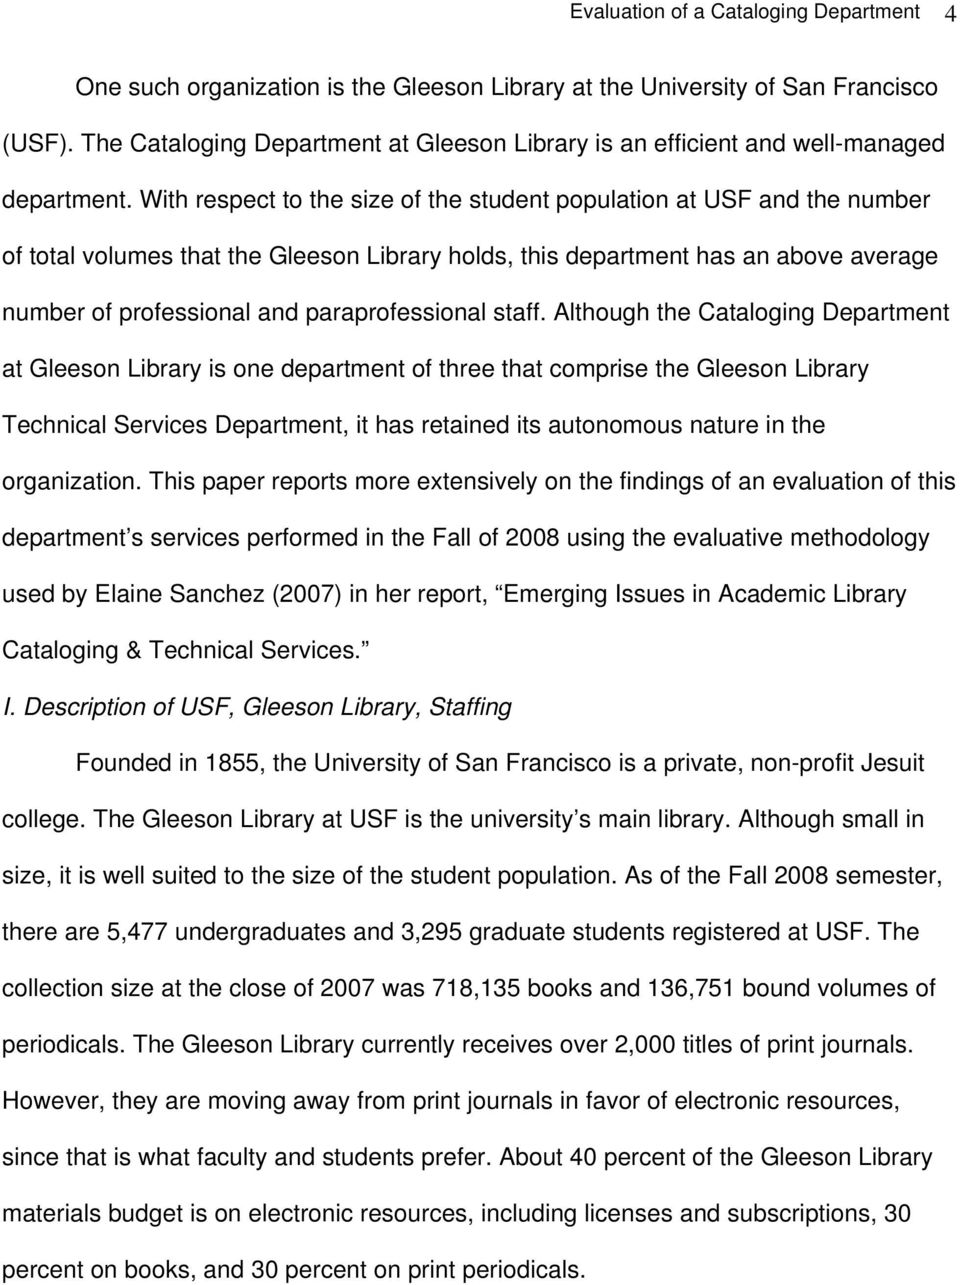 With respect to the size of the student population at USF and the number of total volumes that the Gleeson Library holds, this department has an above average number of professional and